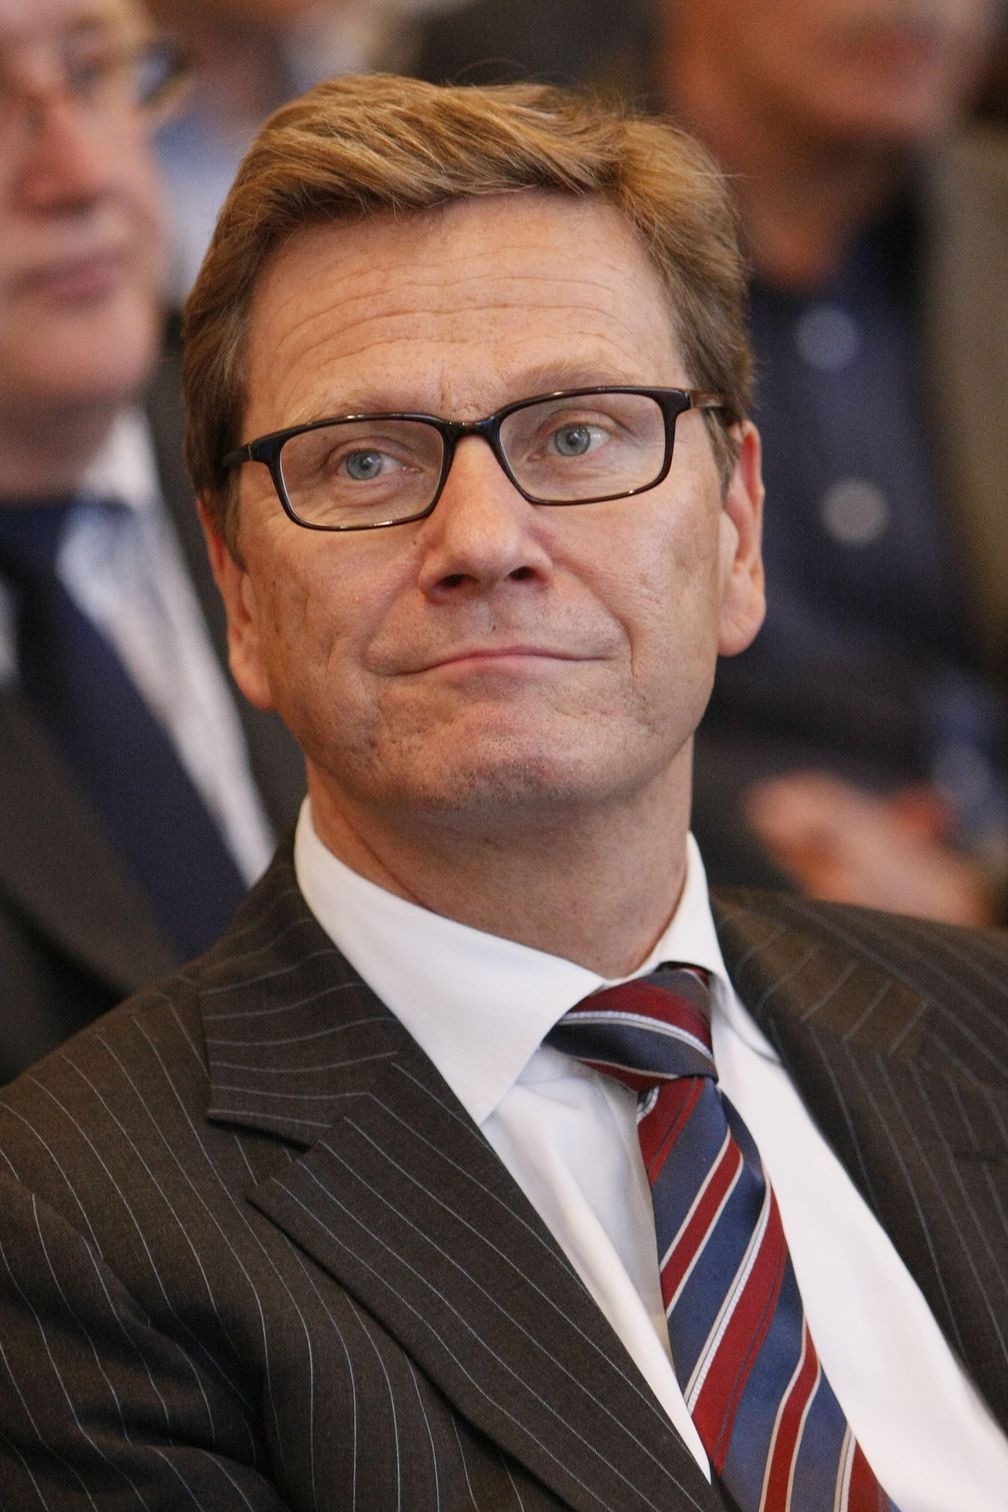 Guido Westerwelle Net Worth